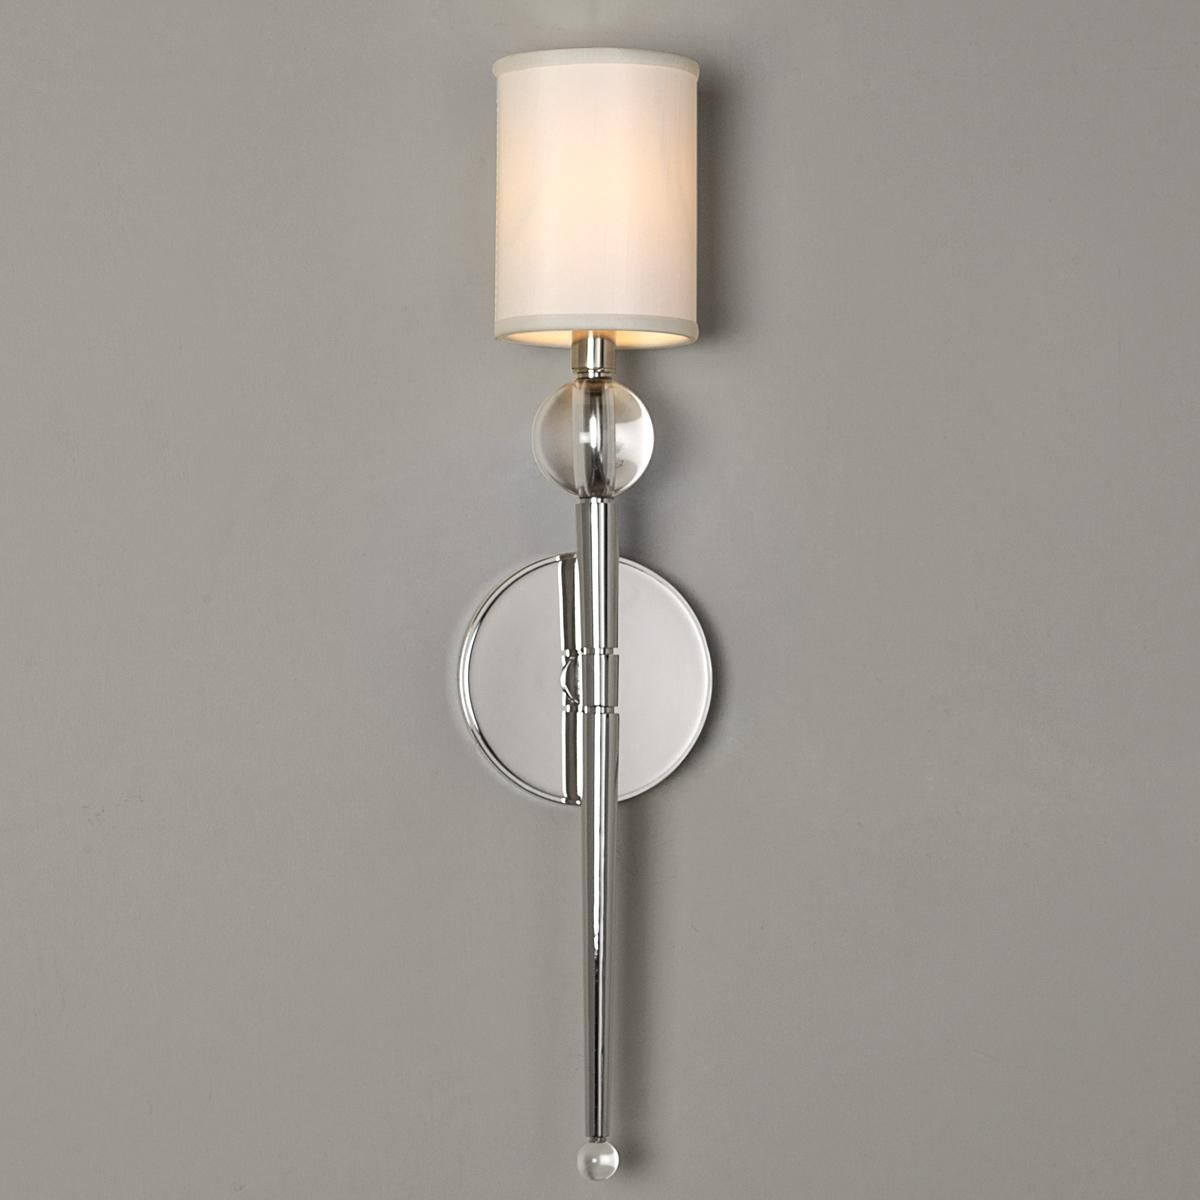 Candle Wall Sconces For Bathroom : Crystal Ball and Elongated Torch Wall Sconce Crystal ball, Torches and Wall sconces